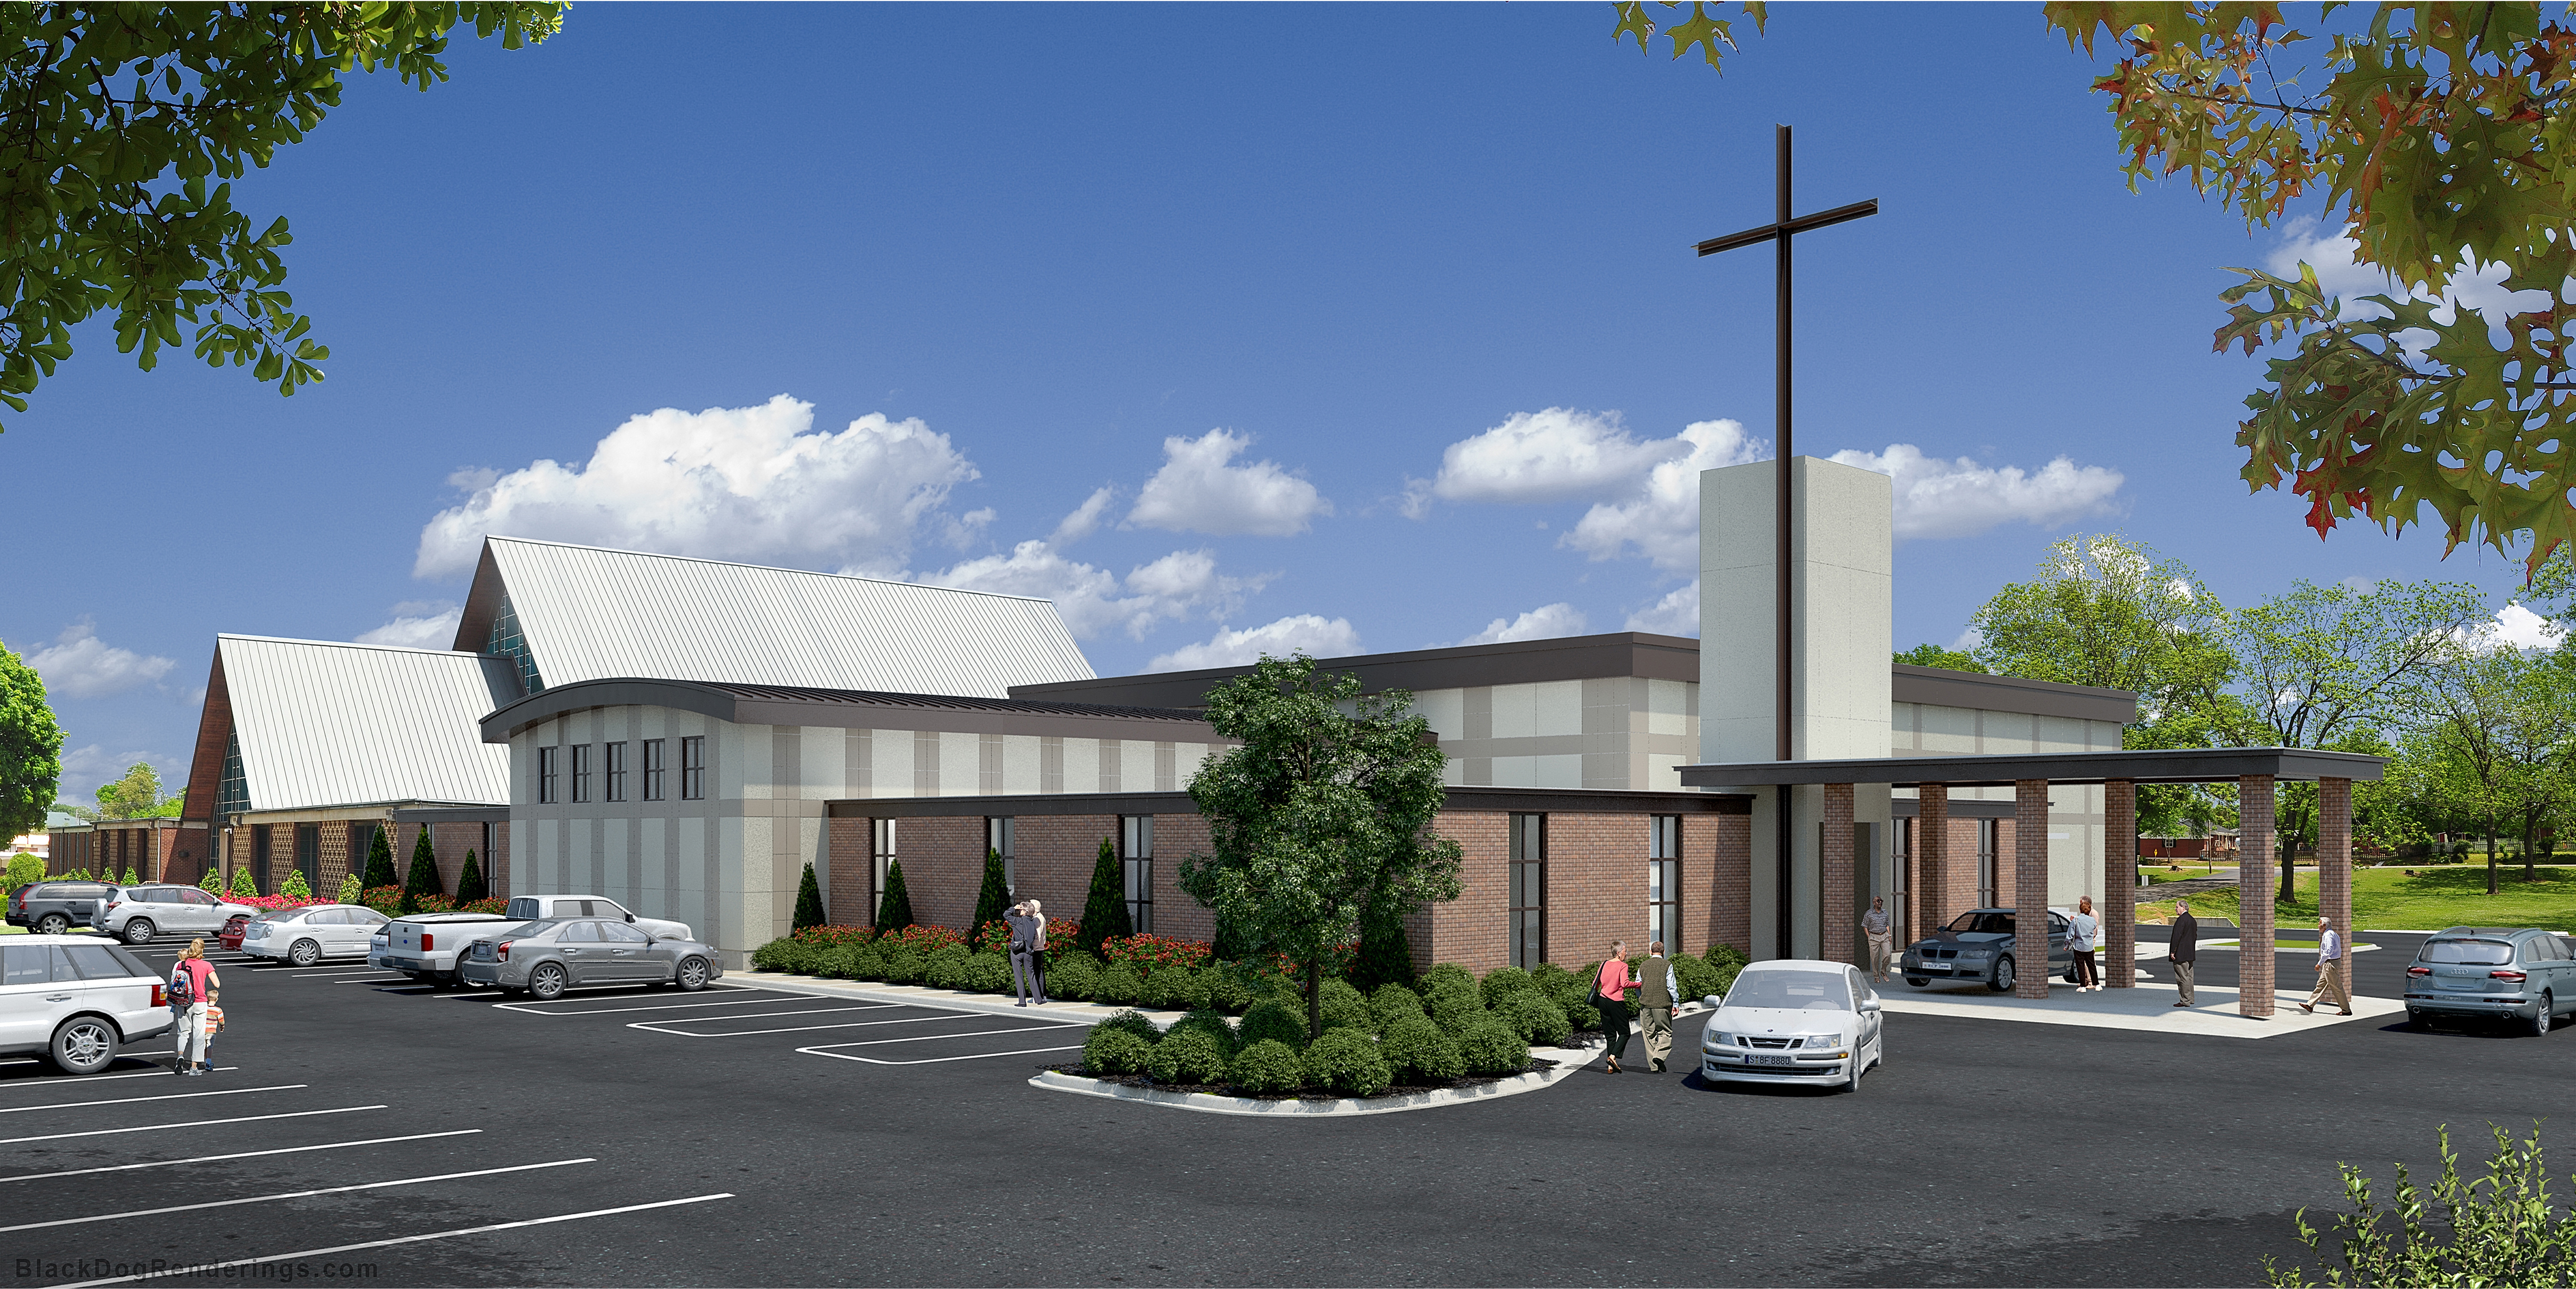 BOONEVILLE CHURCH OF CHRIST